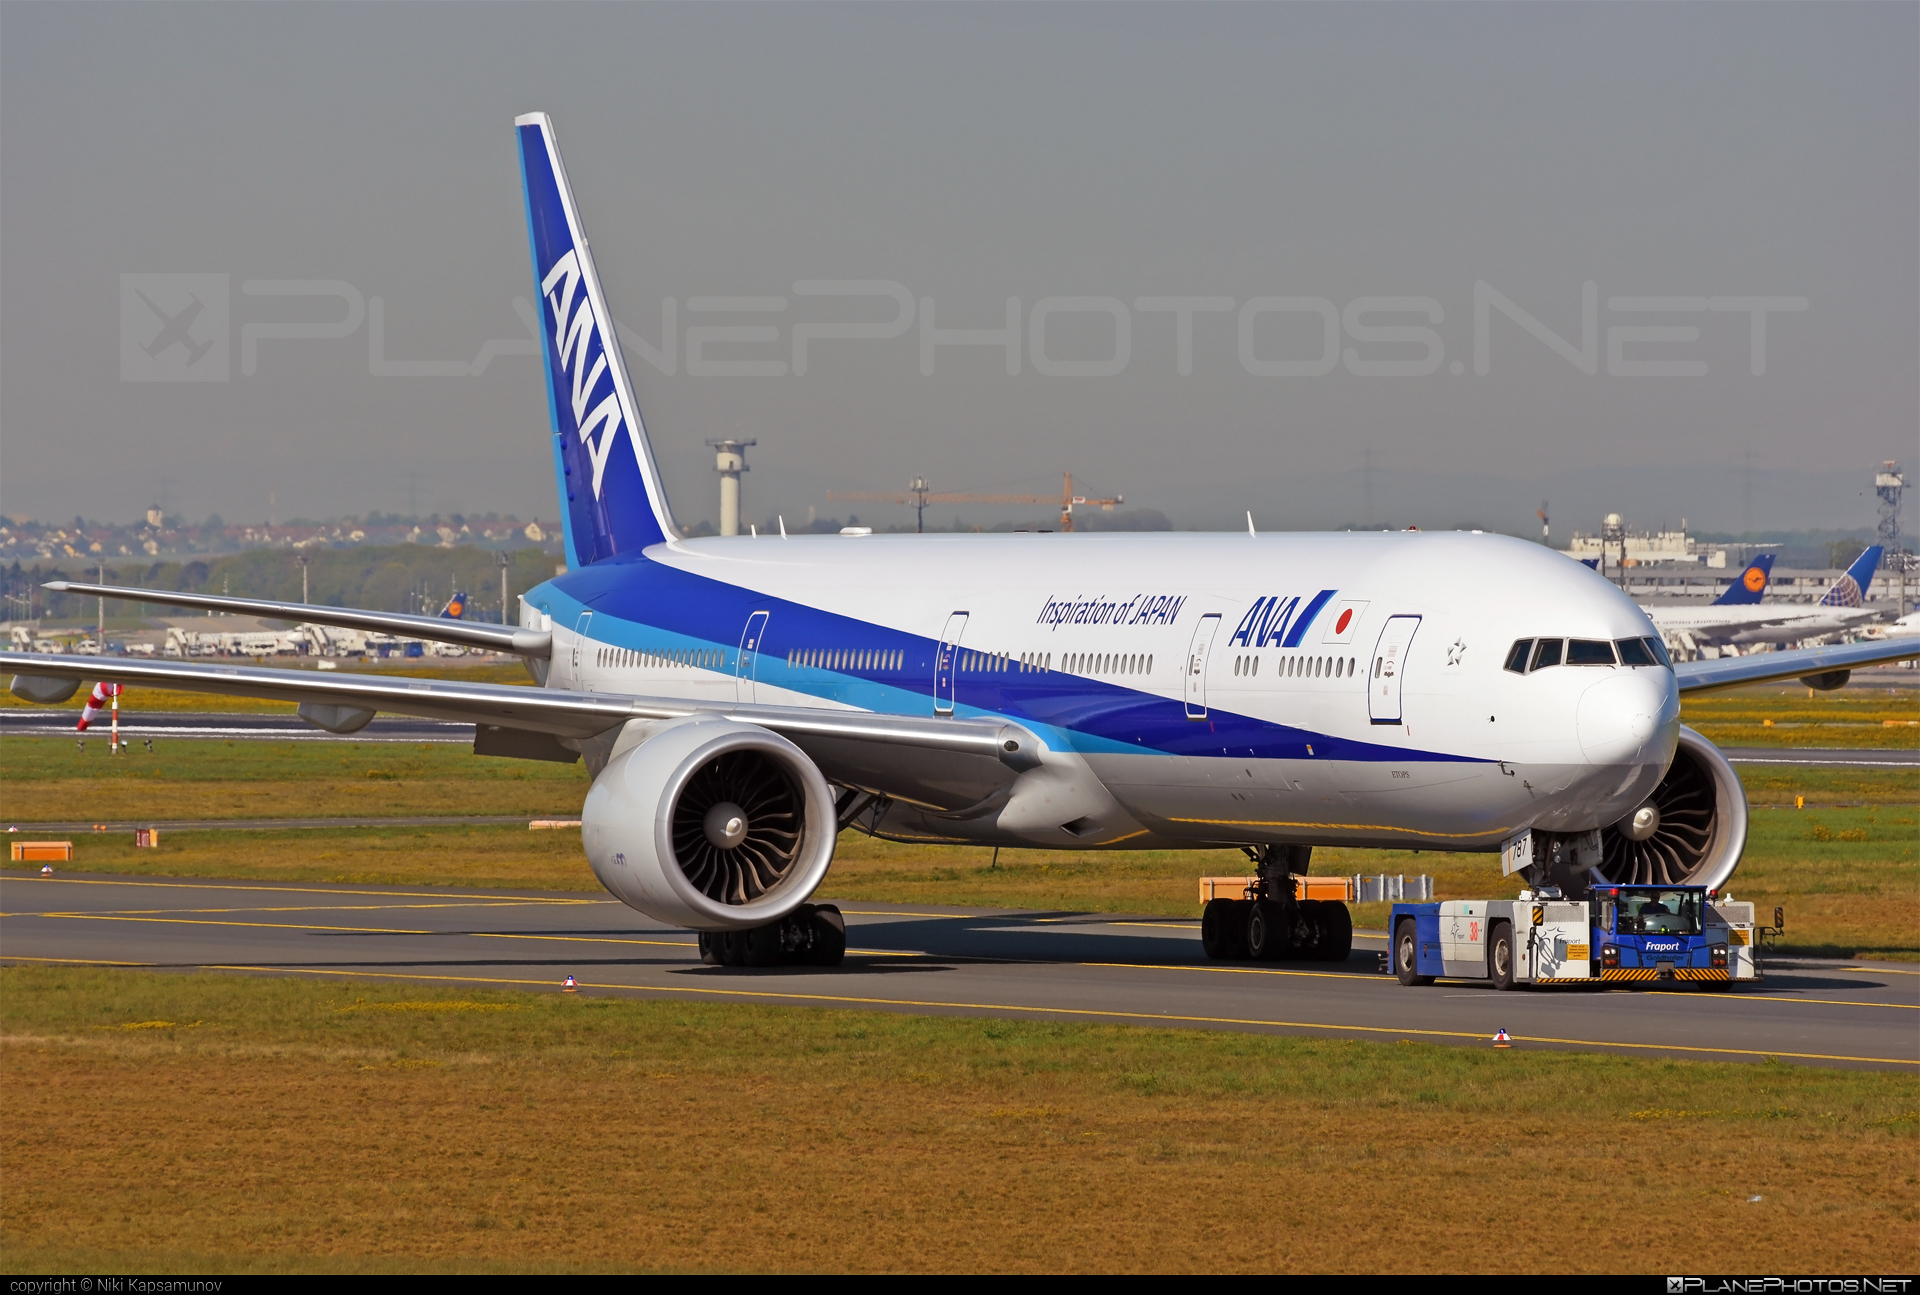 Boeing 777-300ER - JA787A operated by All Nippon Airways (ANA) #b777 #b777er #boeing #boeing777 #tripleseven